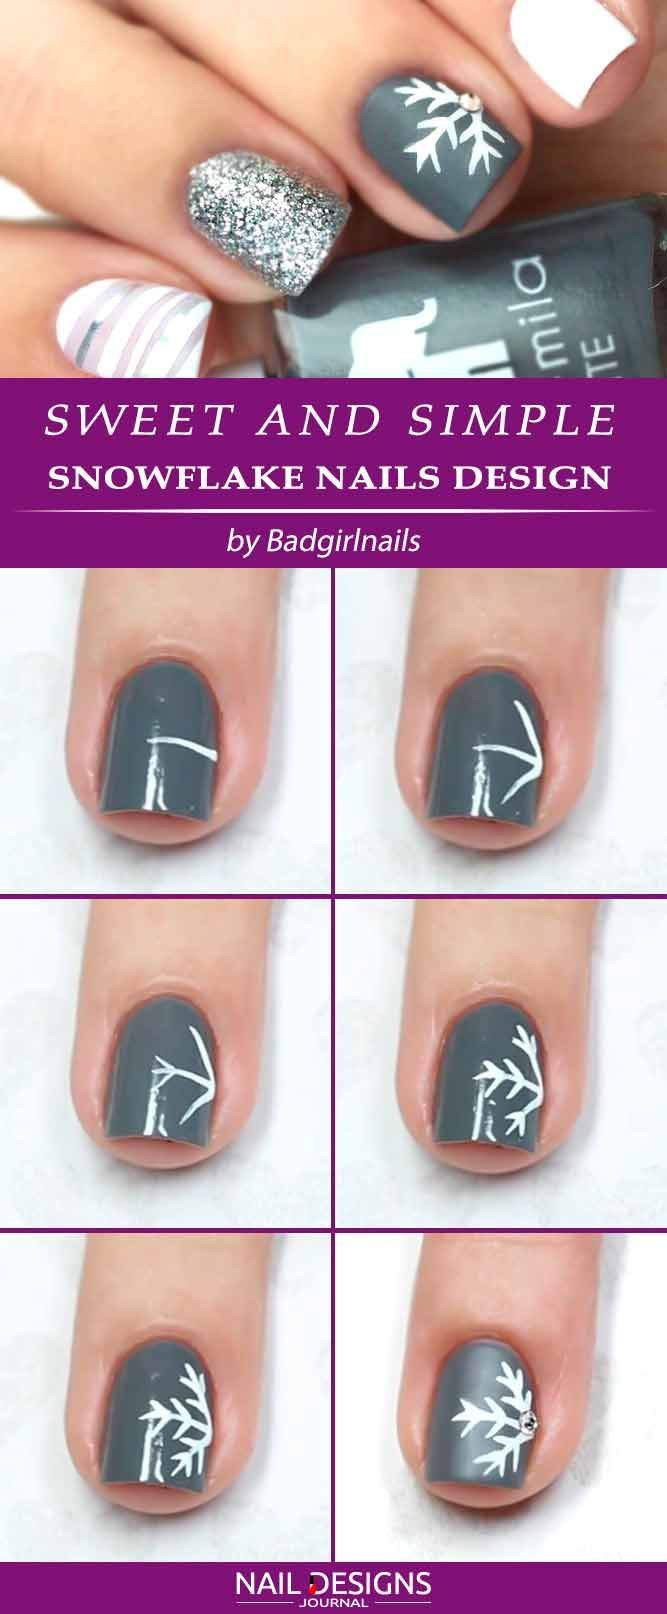 Sweet And Simple Snowflake Nails Design